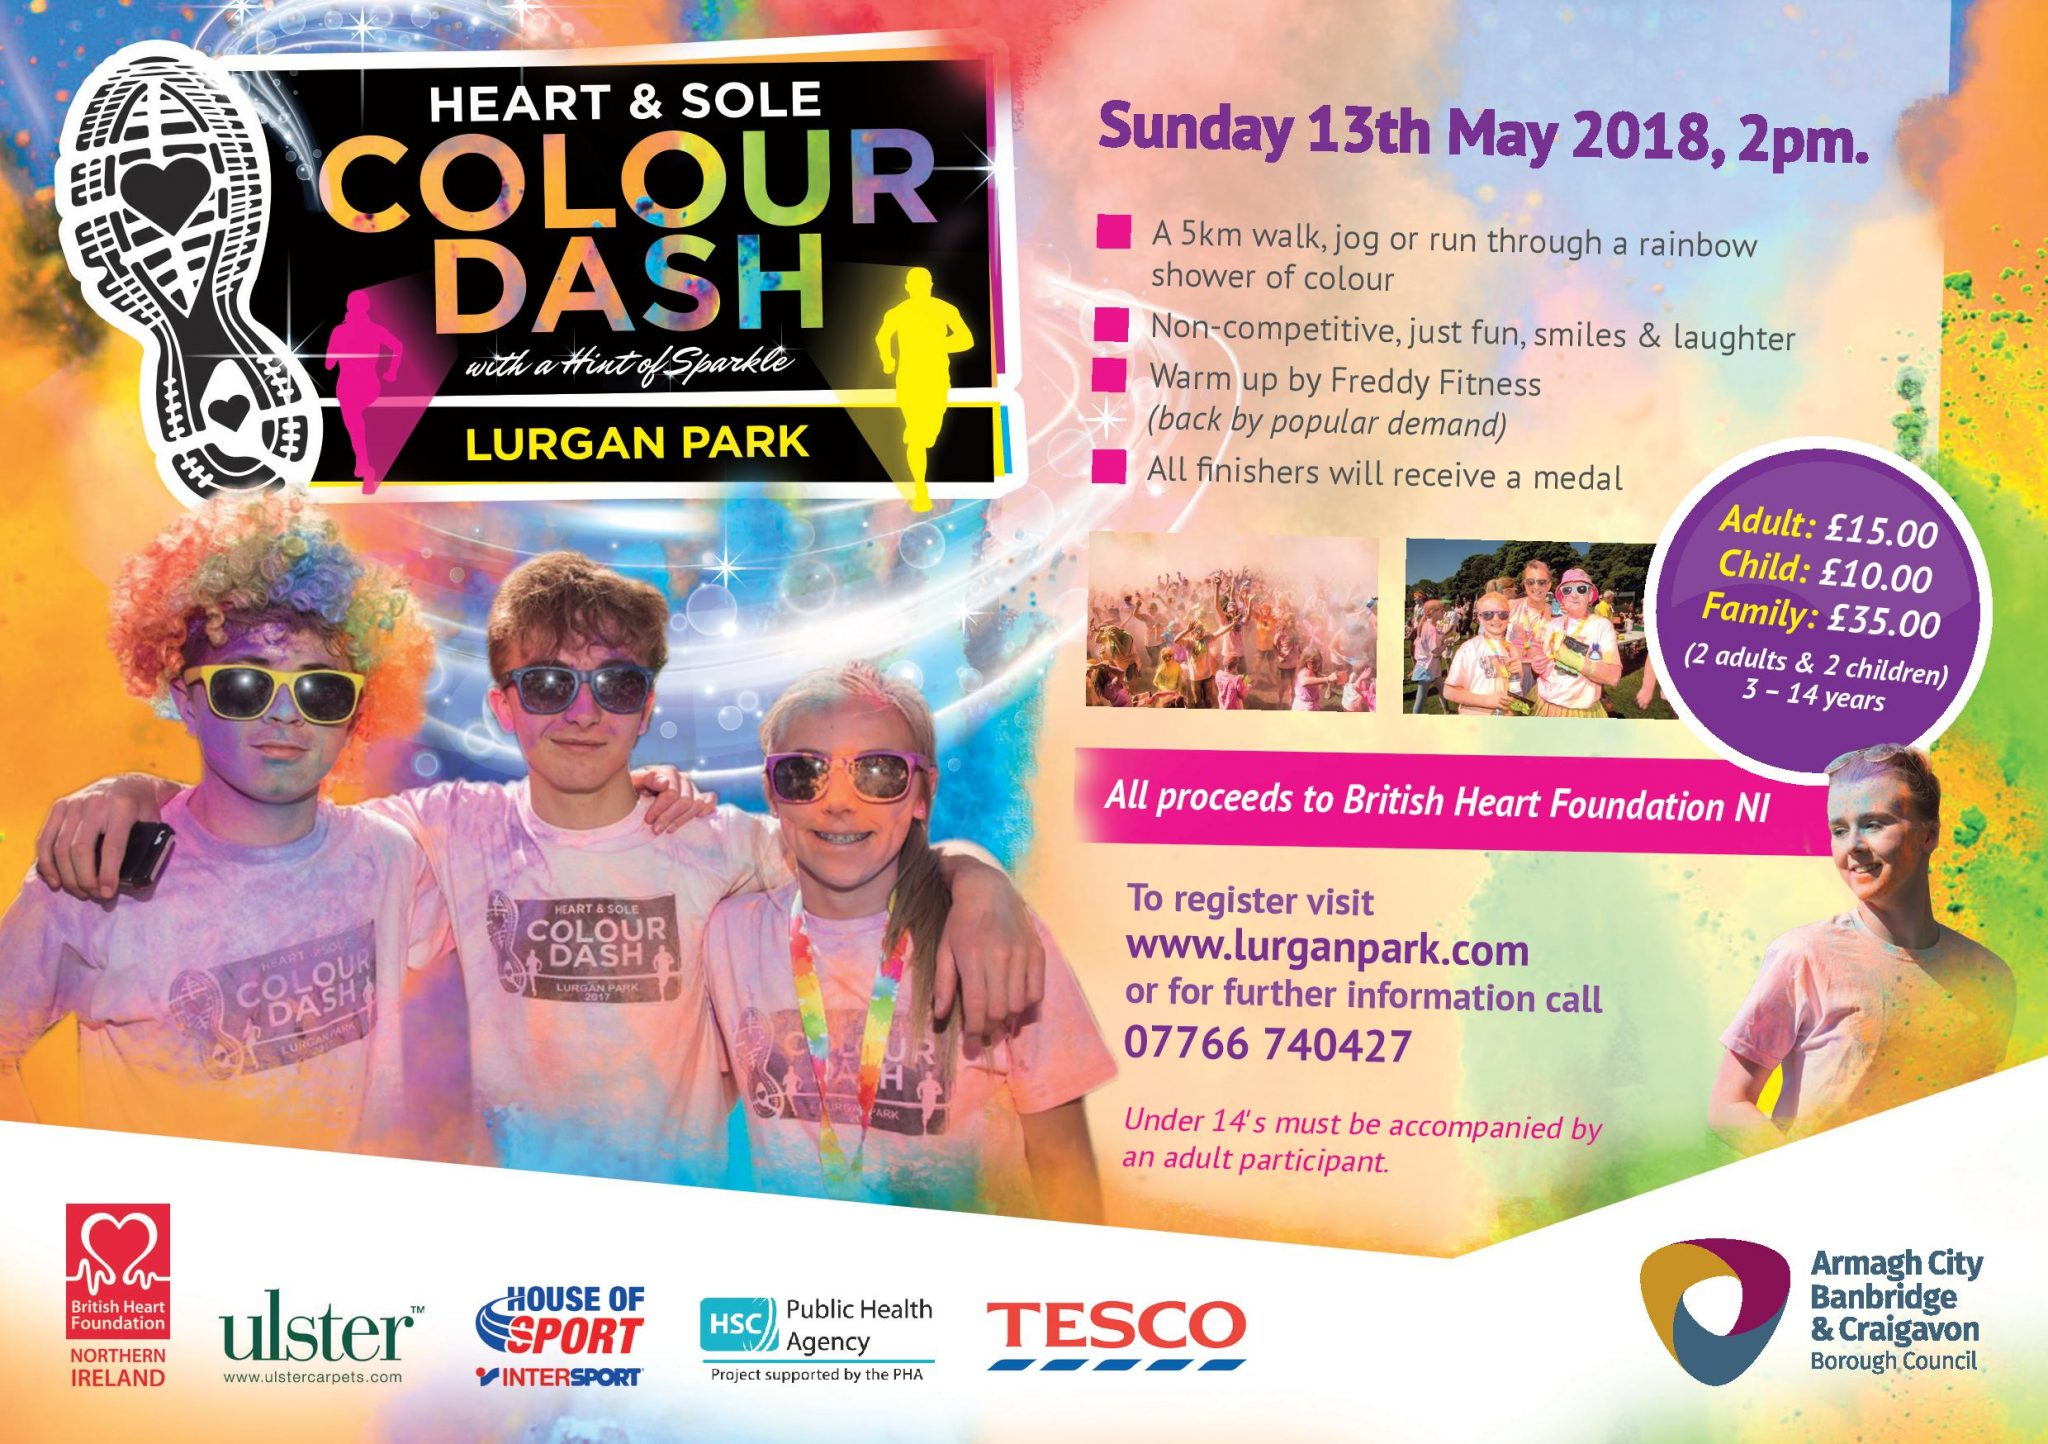 Heart Amp Sole Colour Dash Is Back Amp Bigger For 2018